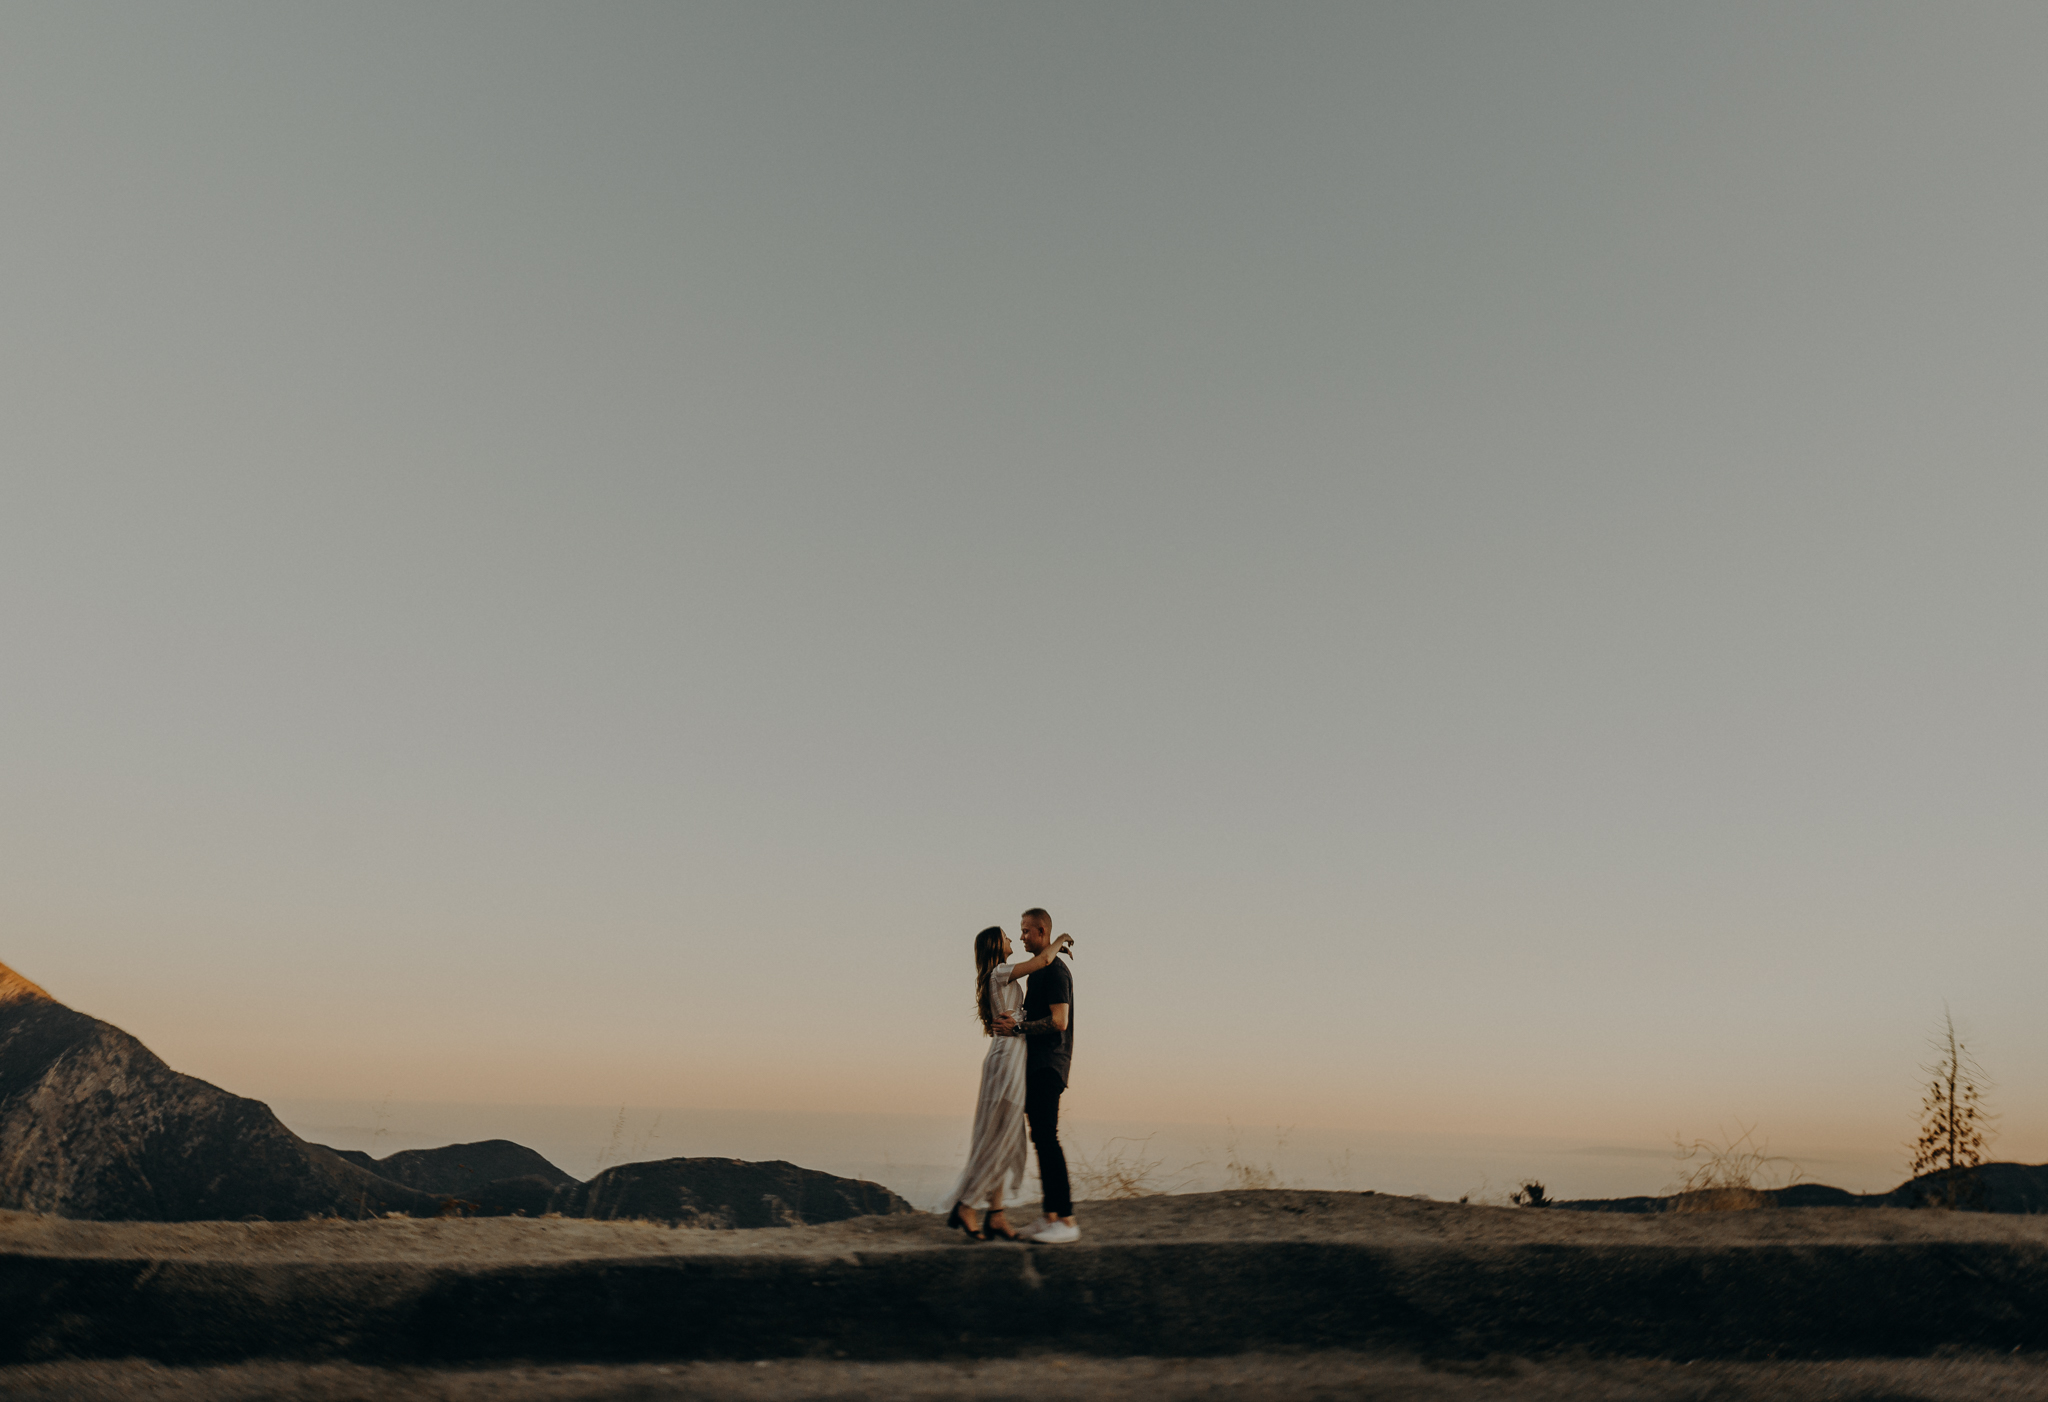 Isaiah + Taylor Photography - Los Angeles Forest Engagement Session - Laid back wedding photographer-009.jpg